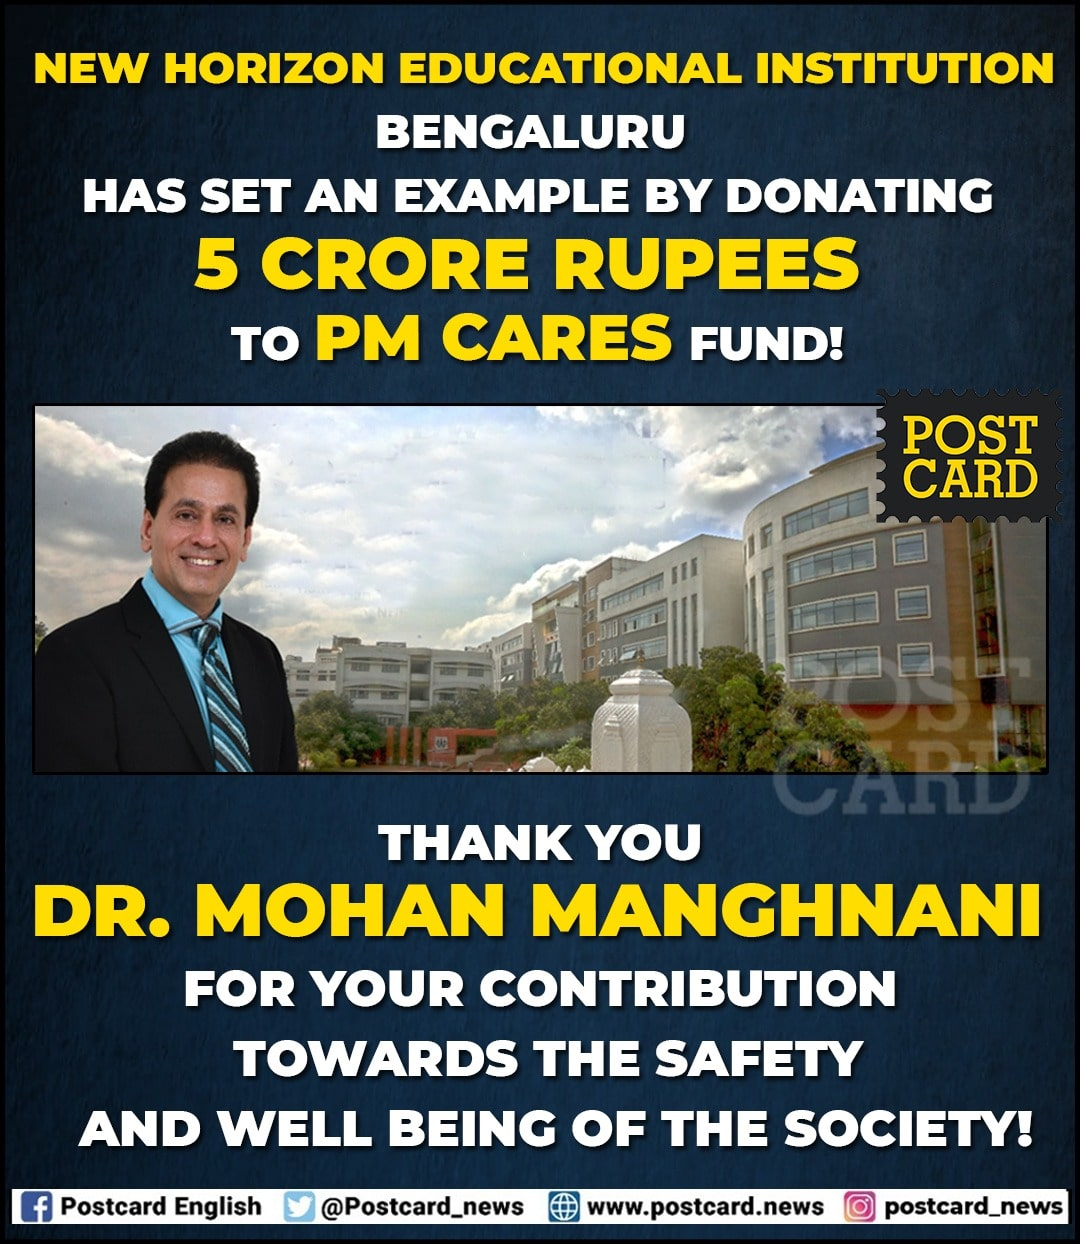 NEW HORIZON EDUCATIONAL INSTITUTION HAS DONATED Rs. 5 Crore TO THE PM CARE FUND